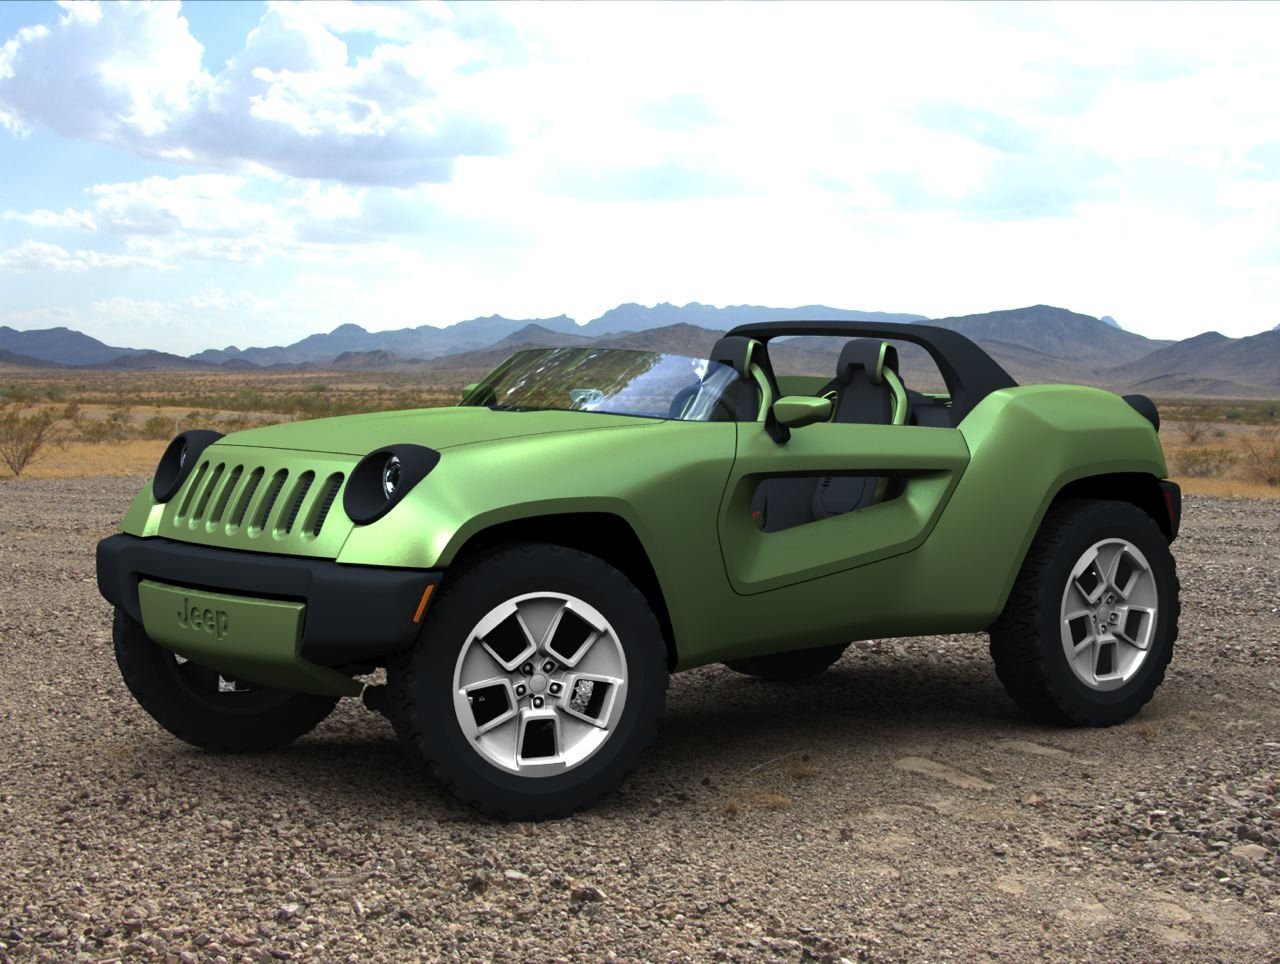 New Automotive Cars Wallpaper Hd Jeep Renegade On This Month